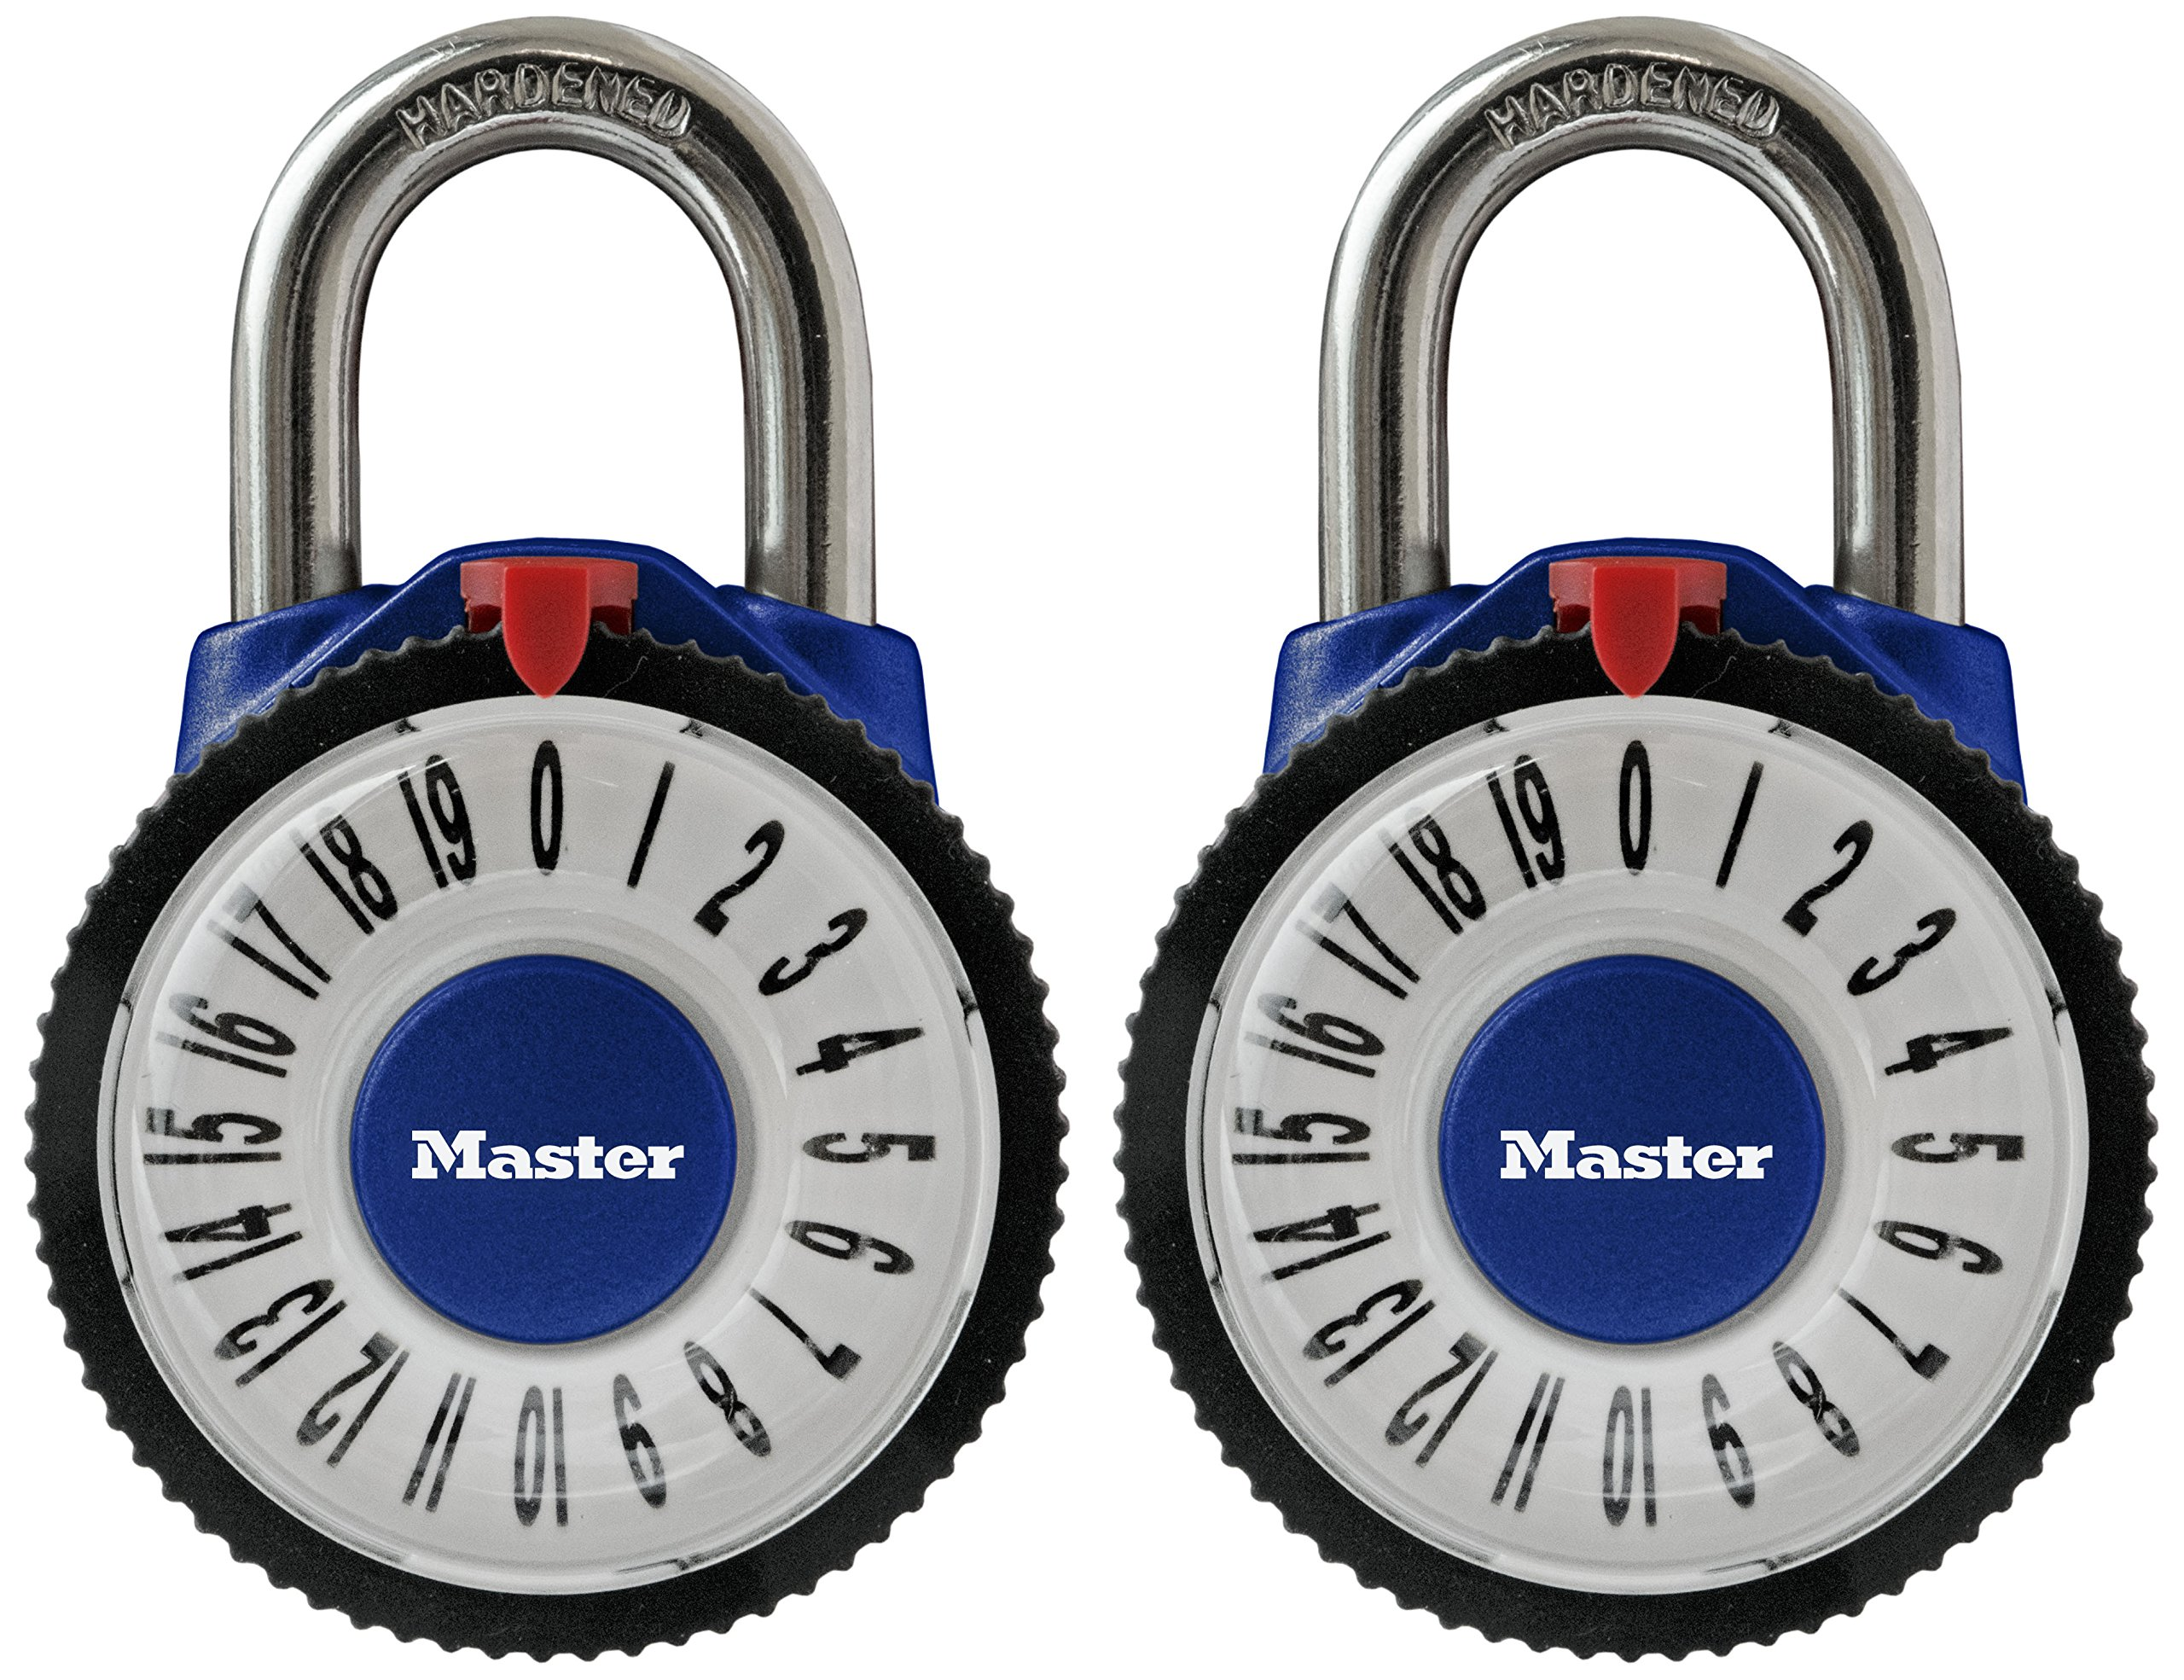 Master Lock Padlock, Standard Dial Combination Lock with Magnification Lens, 2-1/8 in. Wide, Assorted Colors, 1588T (Pack of 2-Combination Alike) by Master Lock (Image #3)